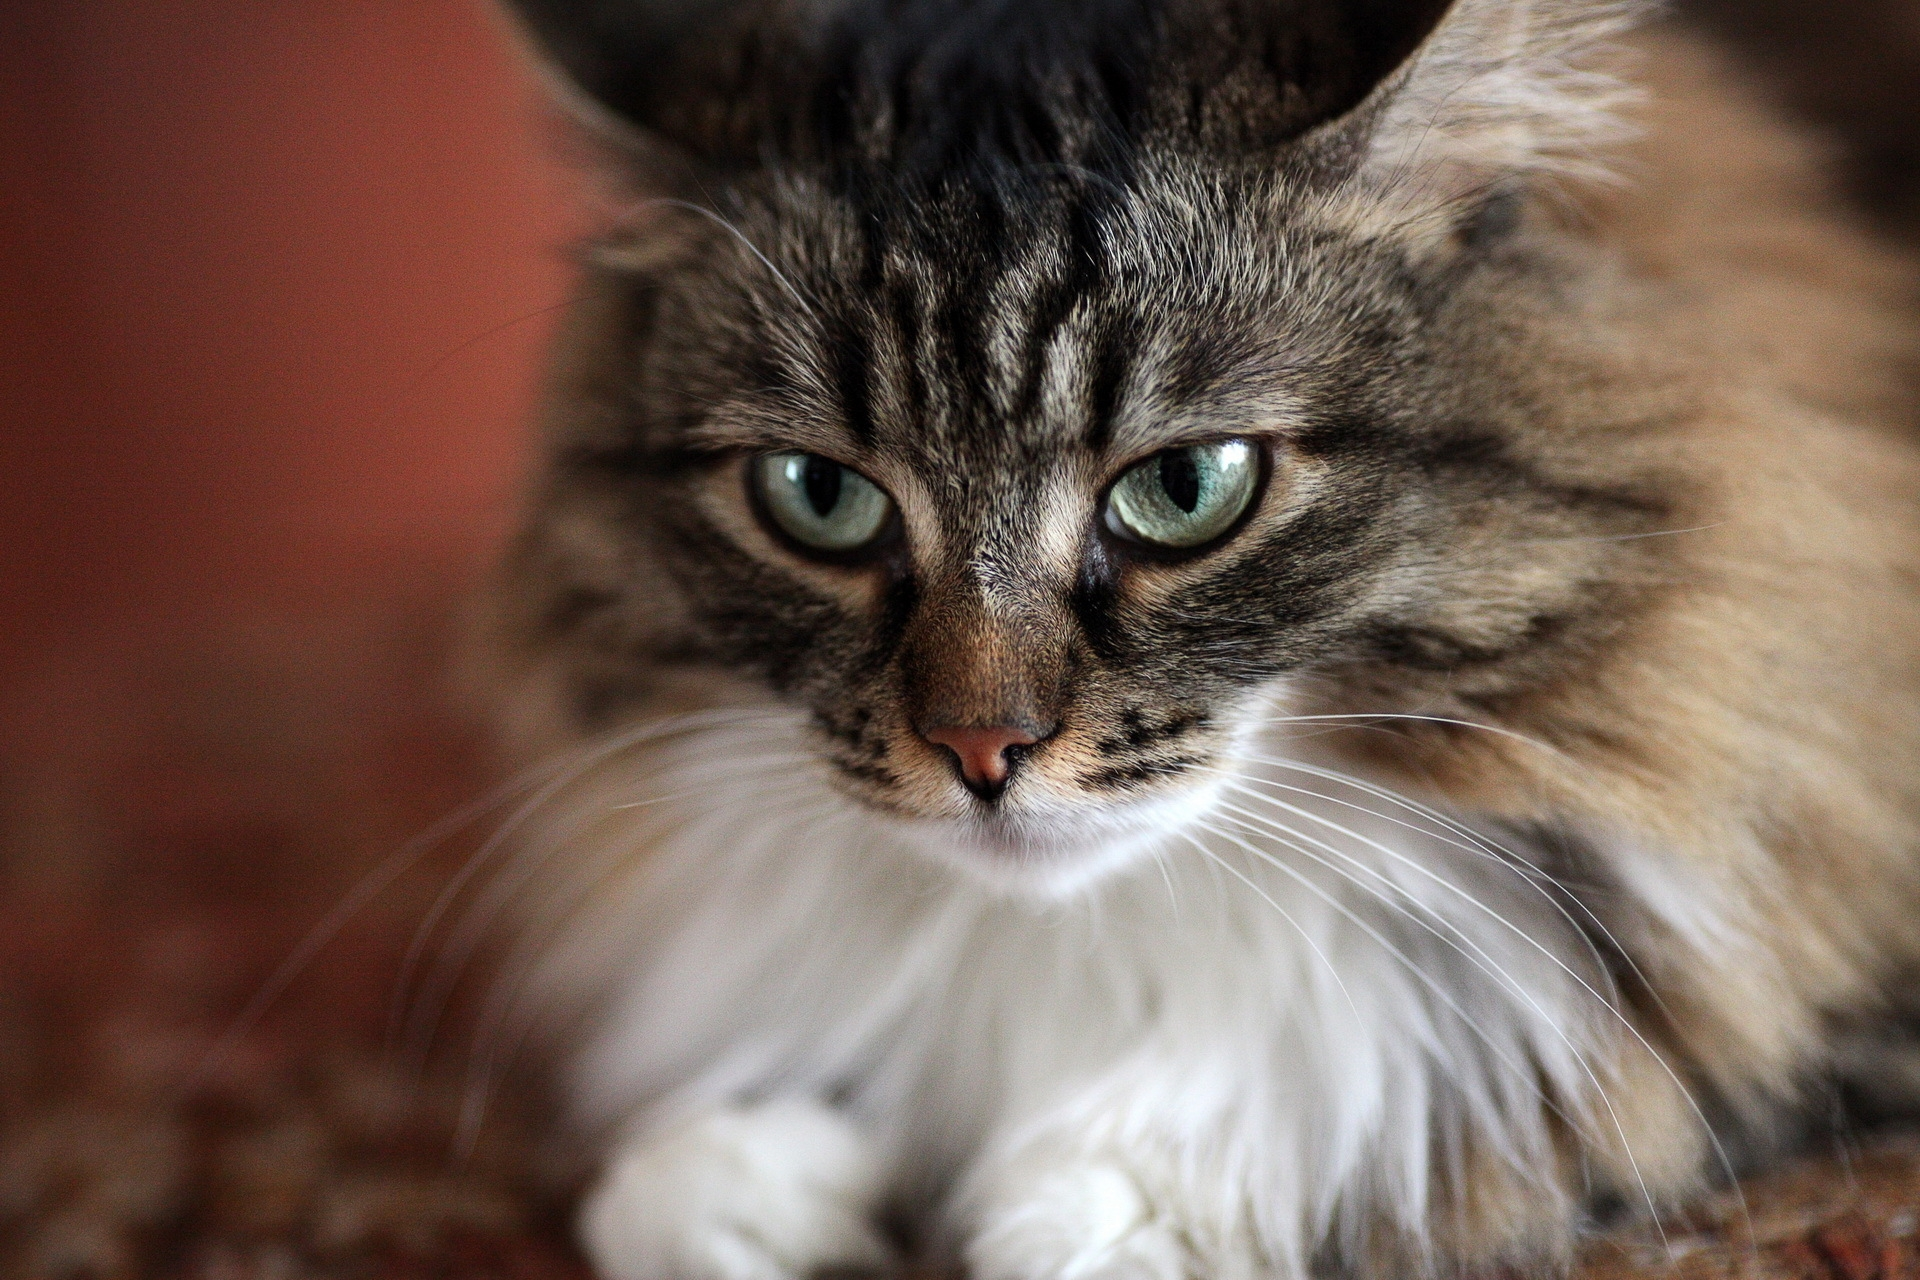 59596 download wallpaper Animals, Cat, Muzzle, Fluffy, Sight, Opinion, Sad screensavers and pictures for free